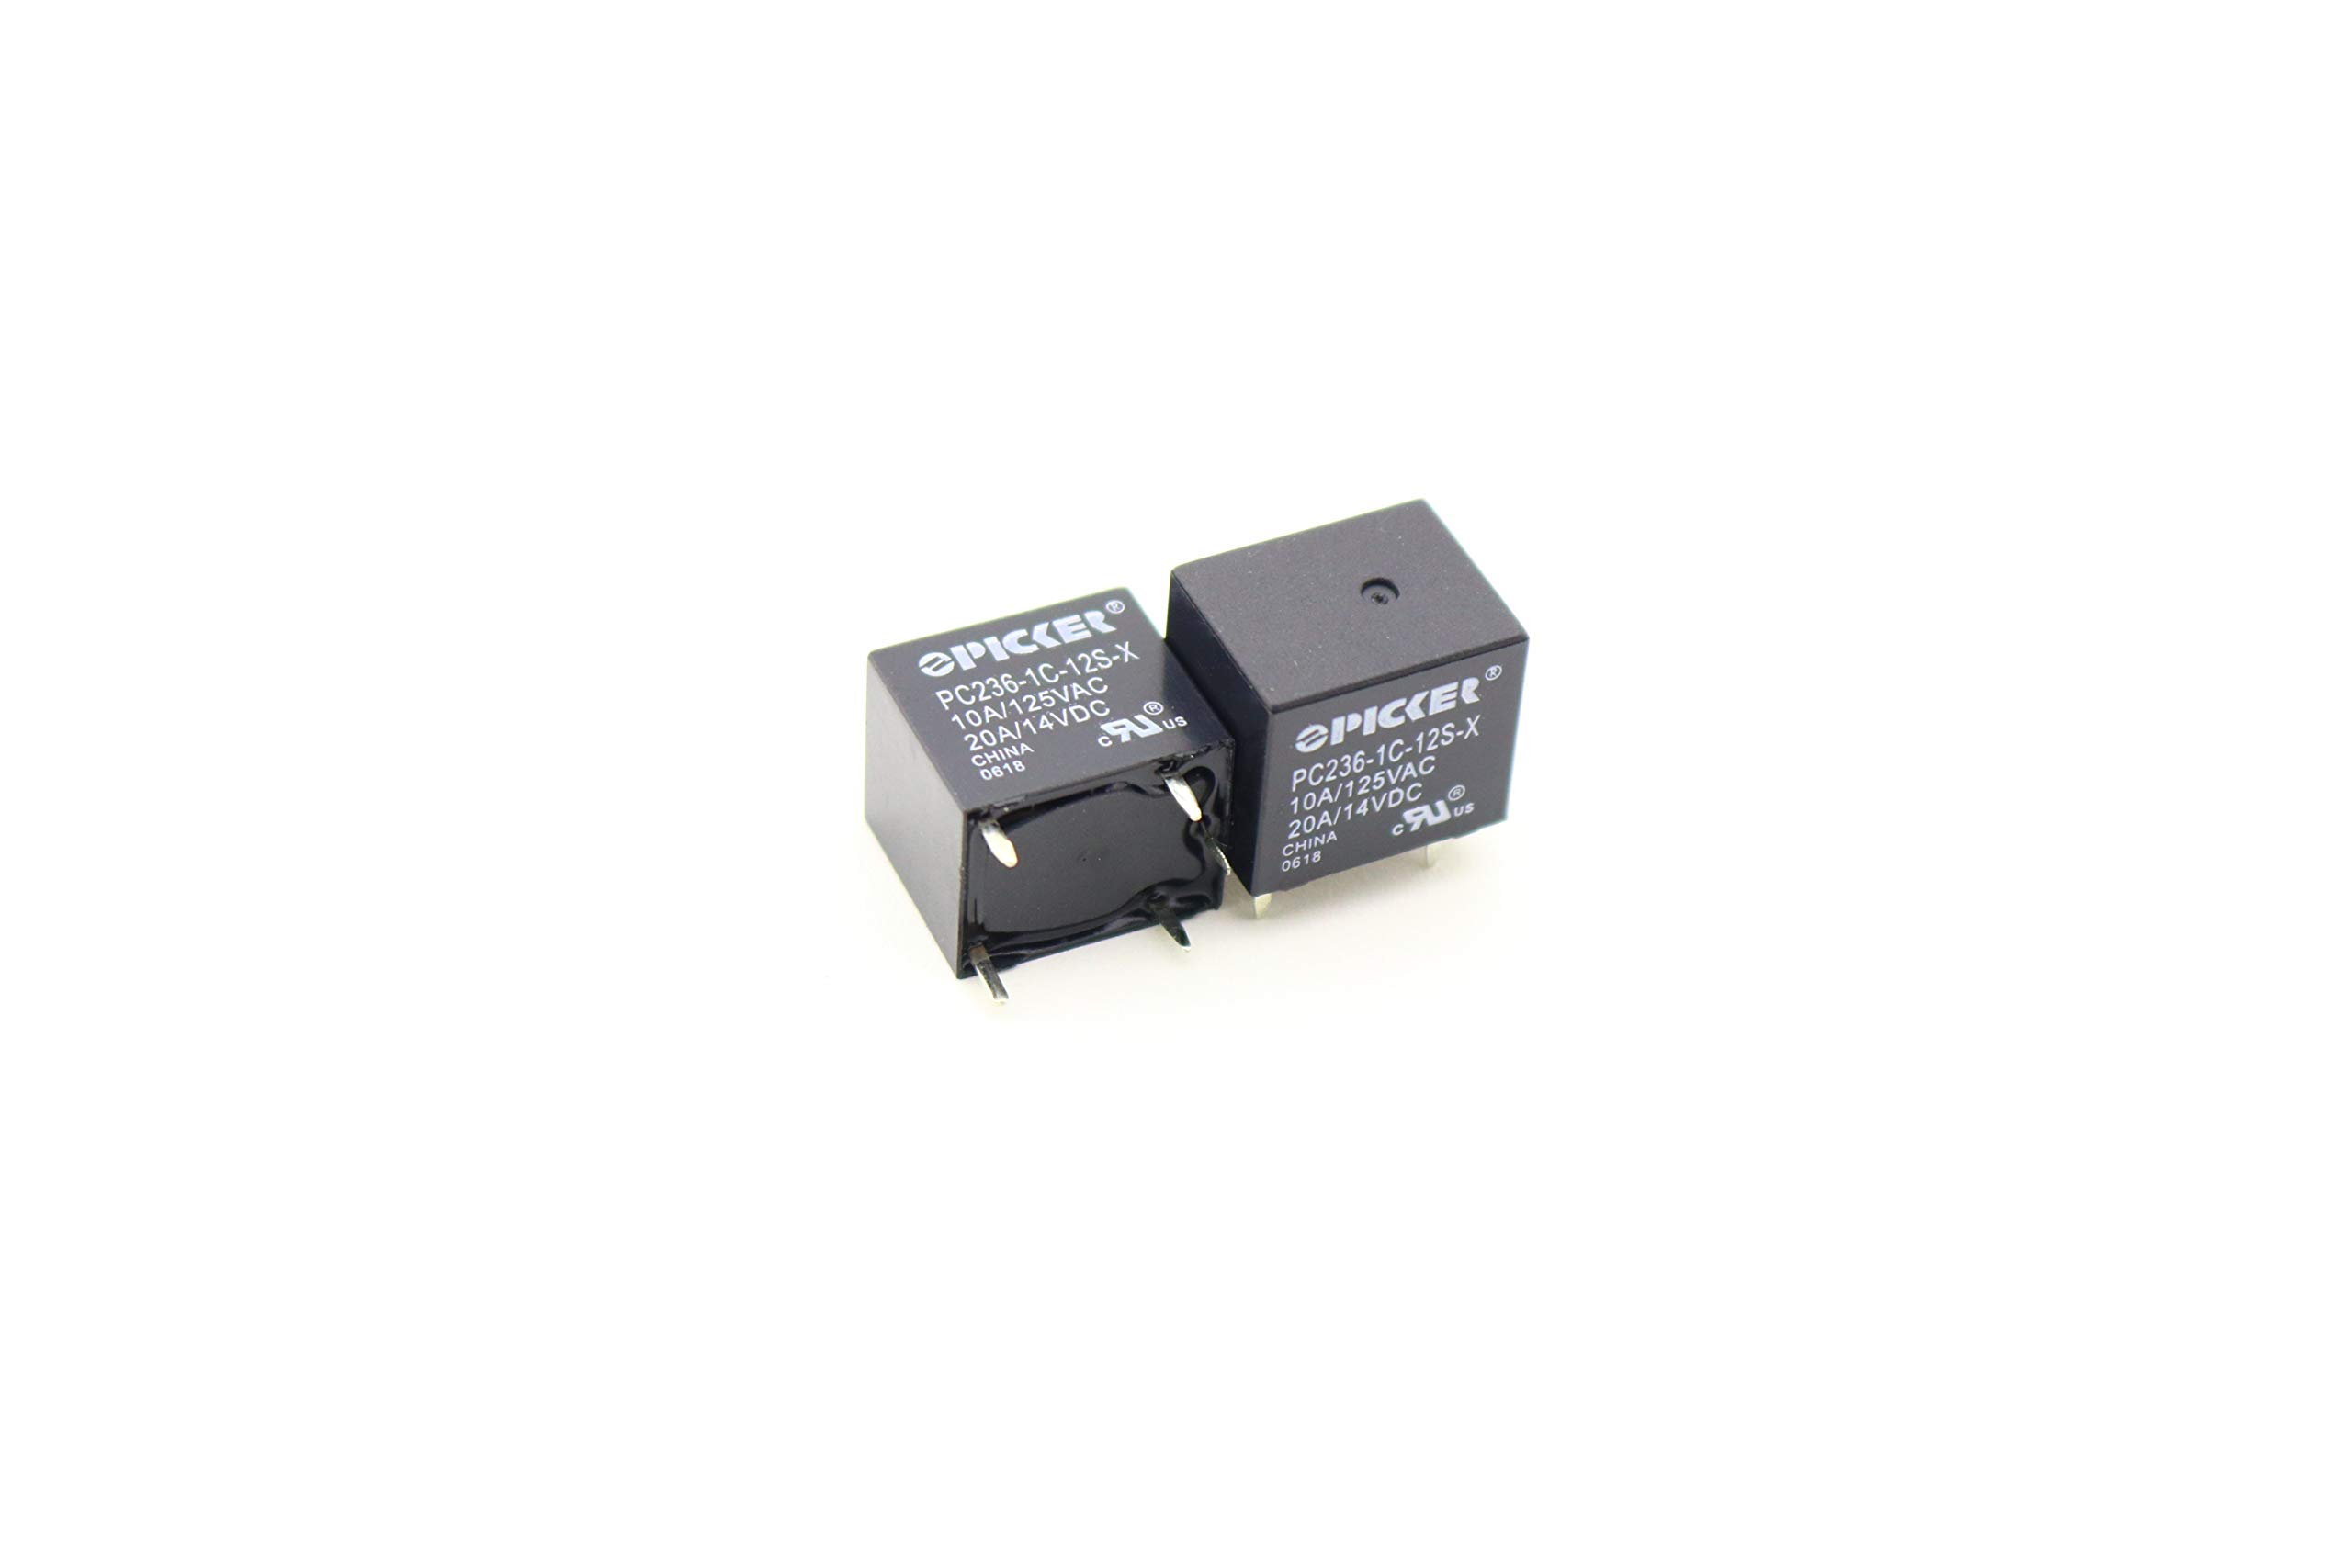 (x2) PC236-1C-12S-X-2 | SPDT 12 VDC Coil | 10 Amp | 120 VAC | 20/15 Amp 14 VAC UL Rated | Sealed Subminiature PCB Power Relay | Cross: Song Chuan 895-1C-C-12VDC, Omron G8QN-1C4-DC12